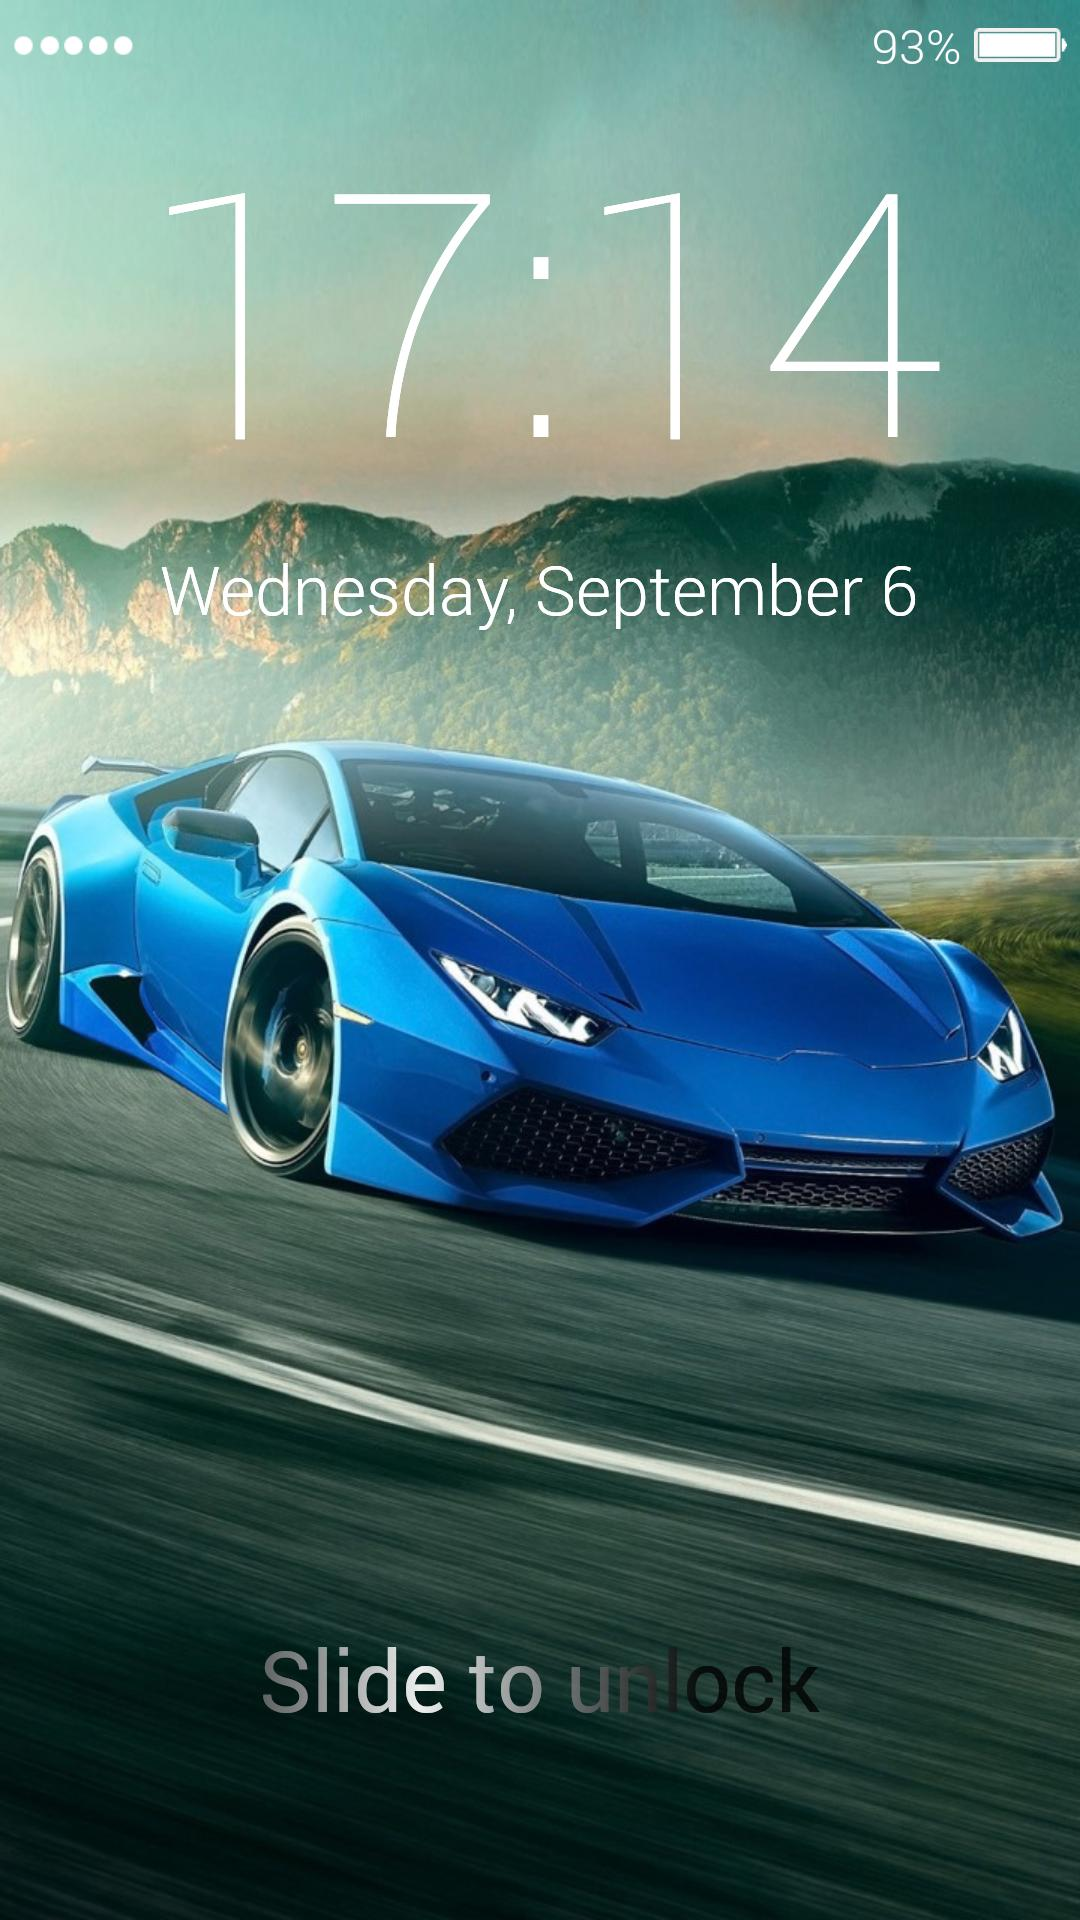 Super Racer Car Lock Screen Wallpapers For Android Apk